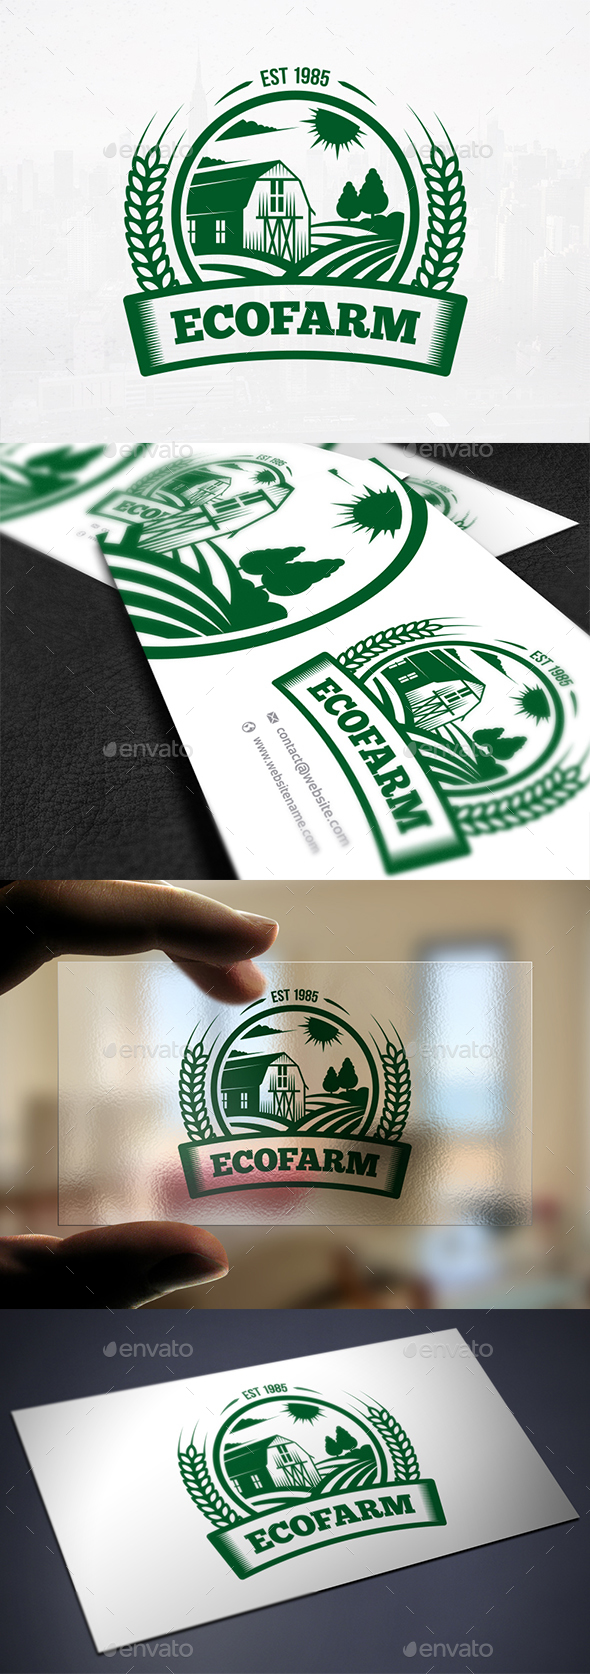 Eco Farm Crest Logo - Crests Logo Templates